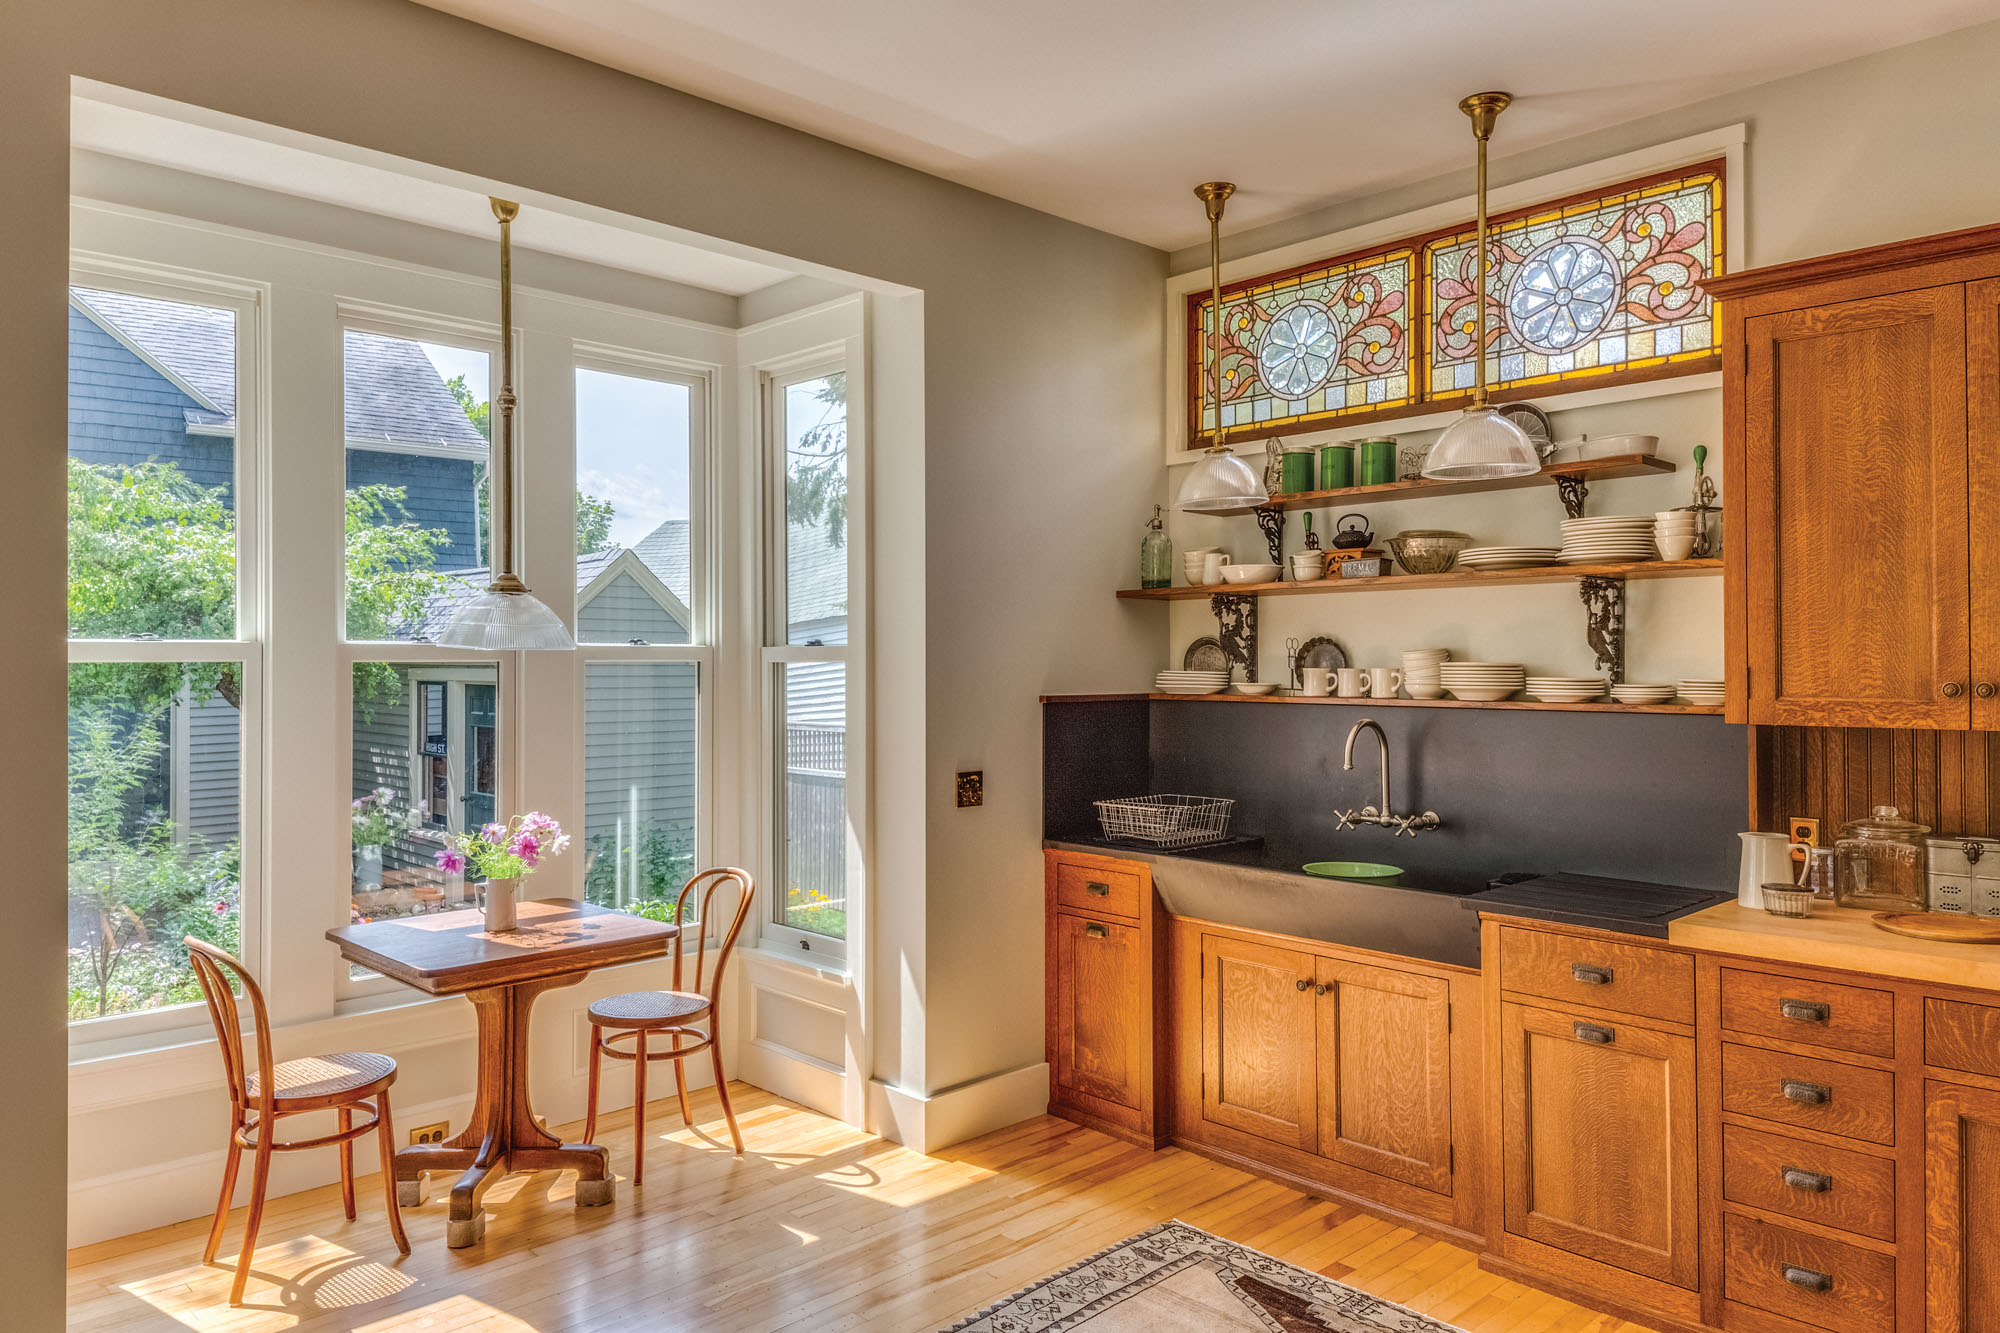 kitchen breakfast nook, stained glass windows